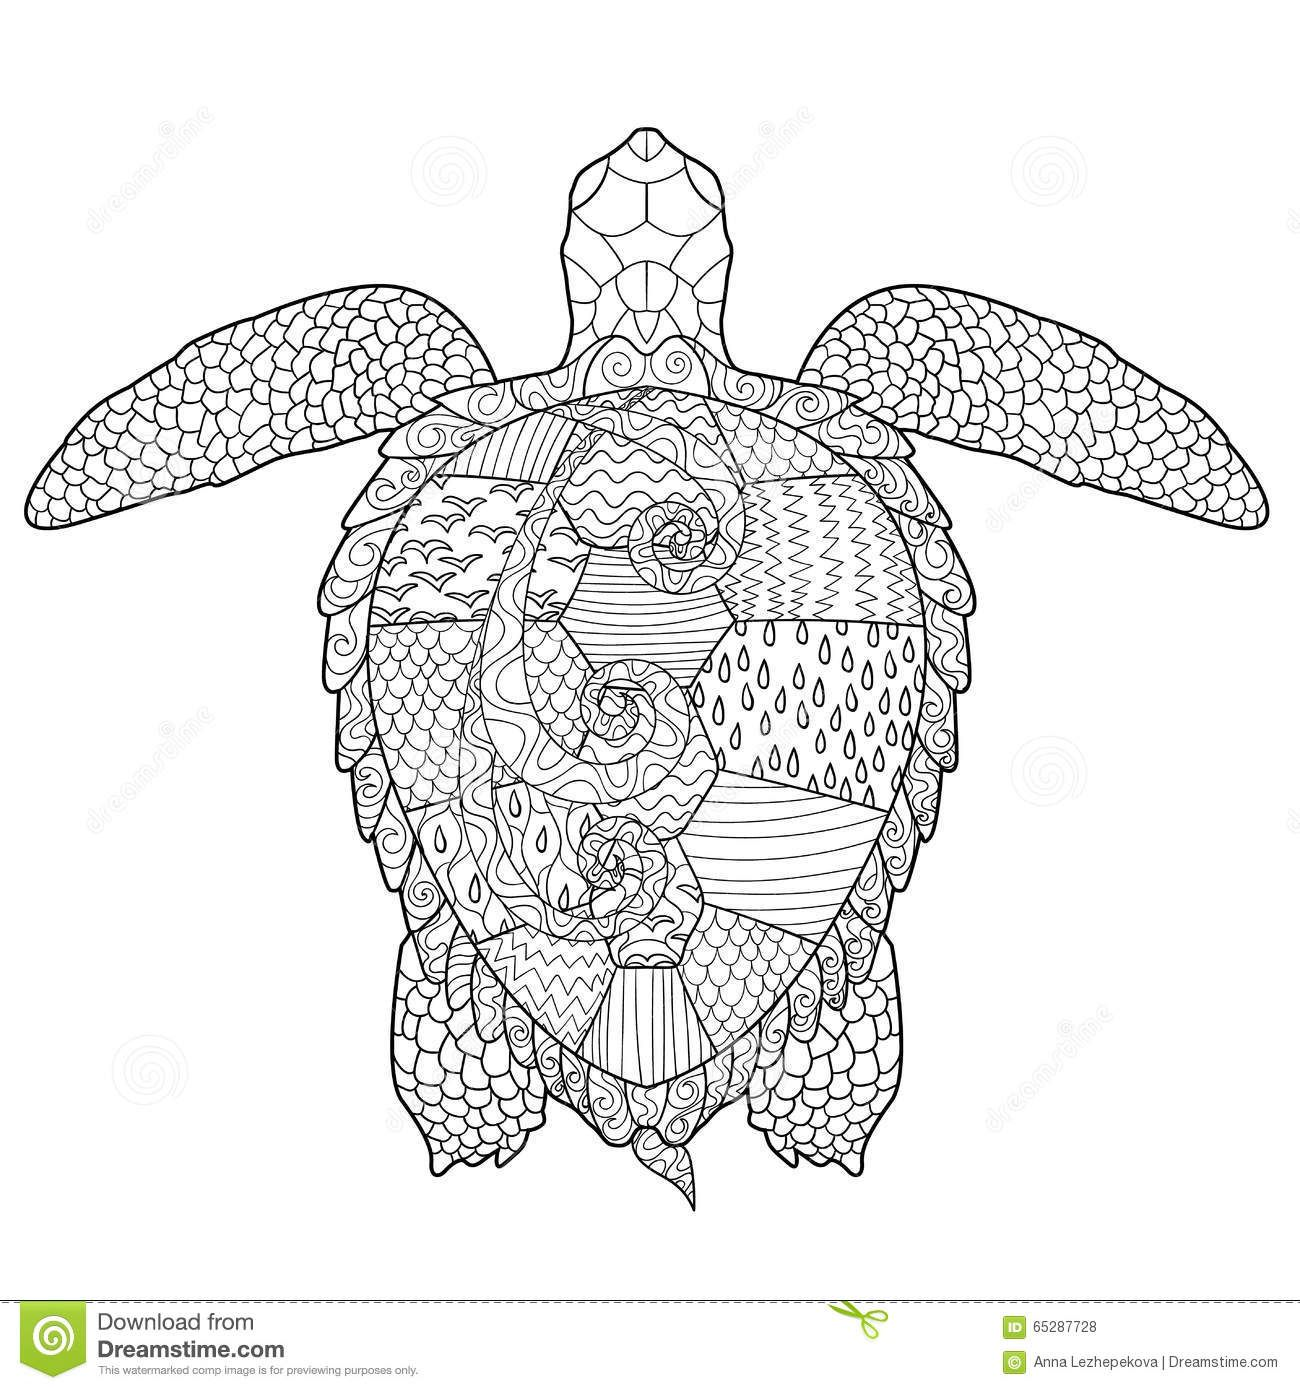 Tattoo Printable Coloring Pages Turtle - Worksheet & Coloring Pages